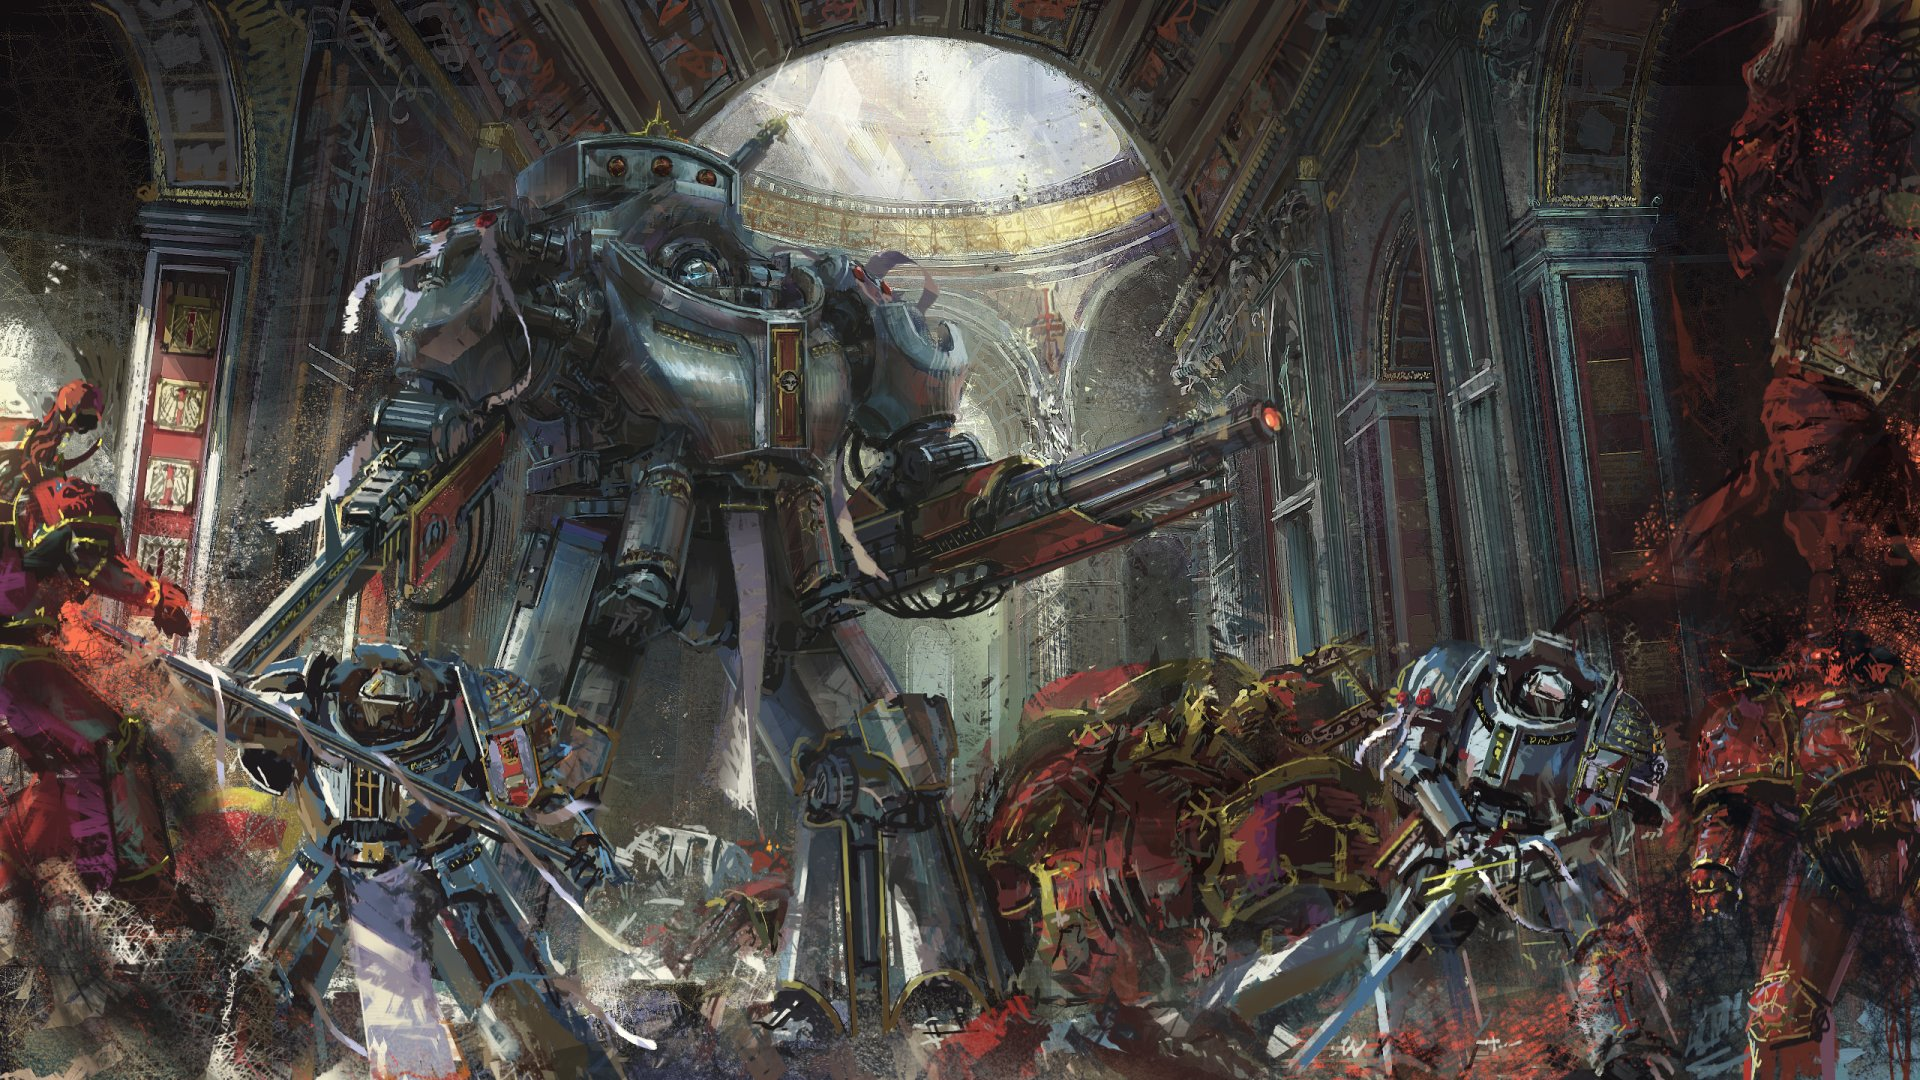 Video Game - Warhammer 40K  Space Marine Warrior Battle Sword Armor Robot Wallpaper